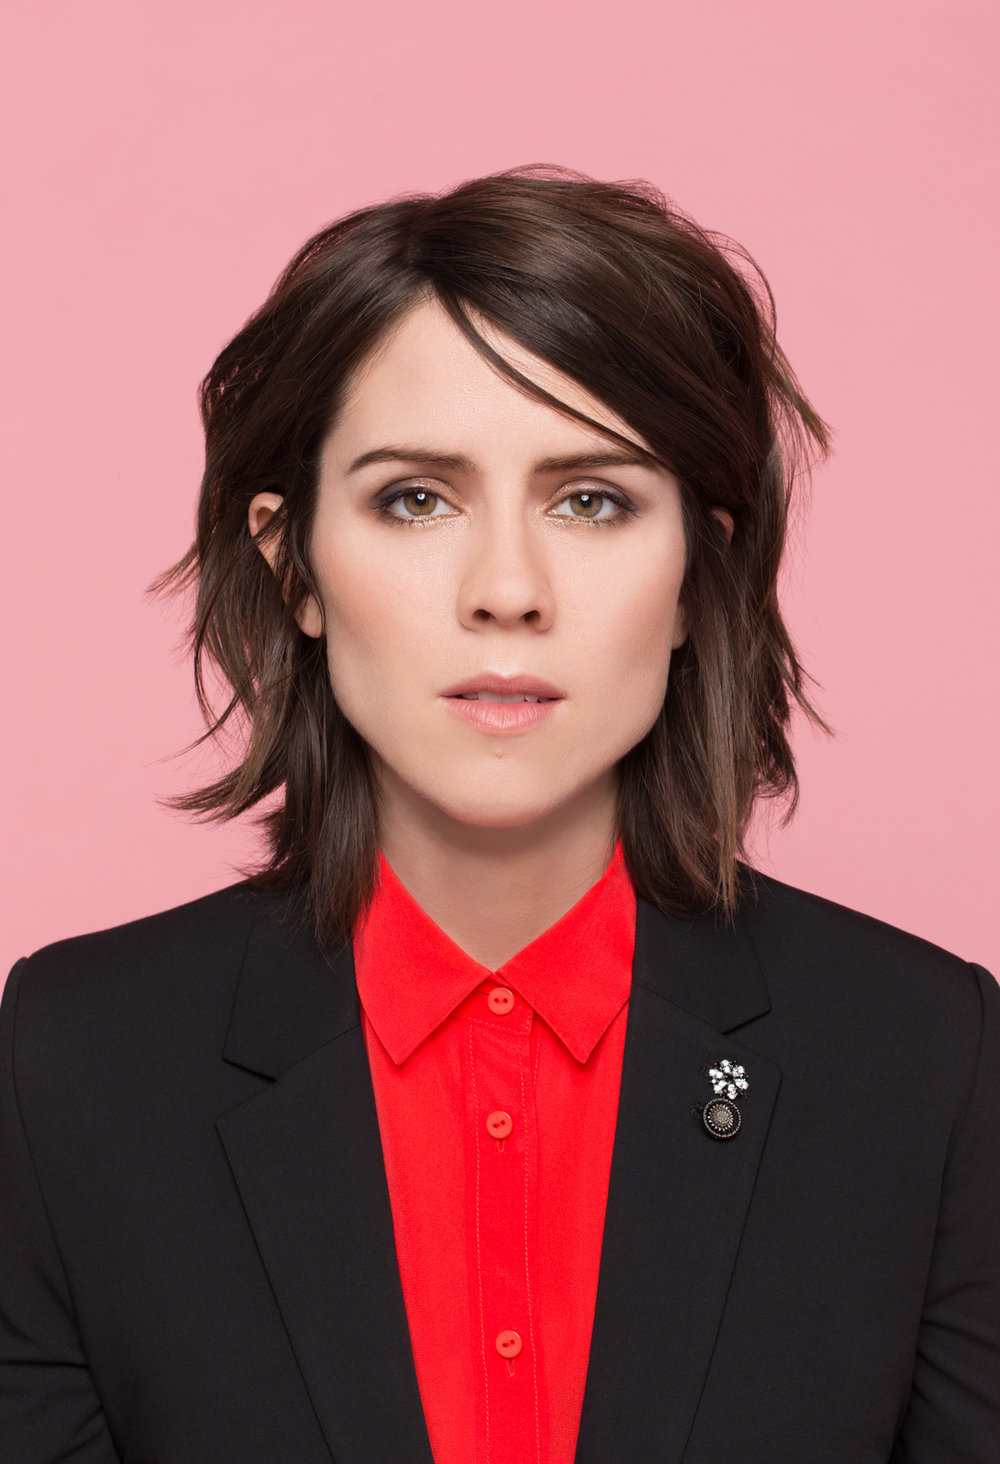 Kelly Jacob photographe tegan and sara cover-5051.jpg